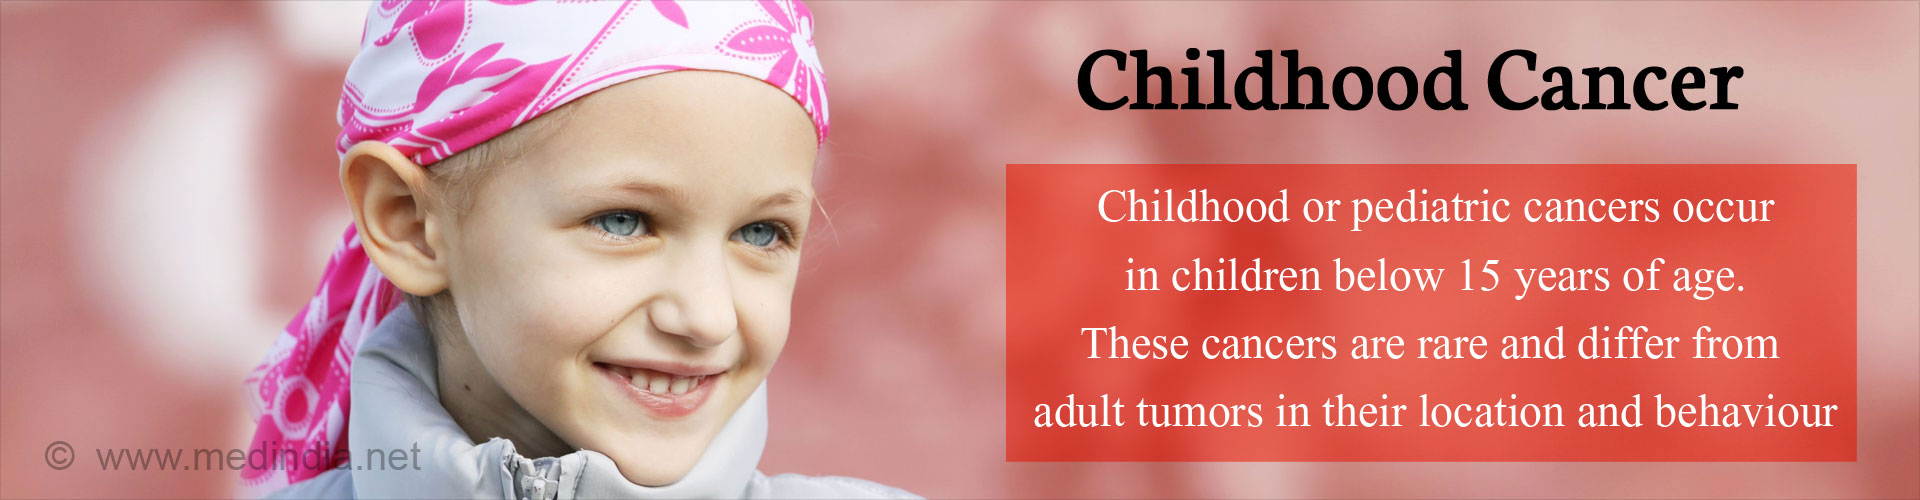 Childhood Cancer - Types, Causes, Symptoms, Diagnosis, Complication & Prevention